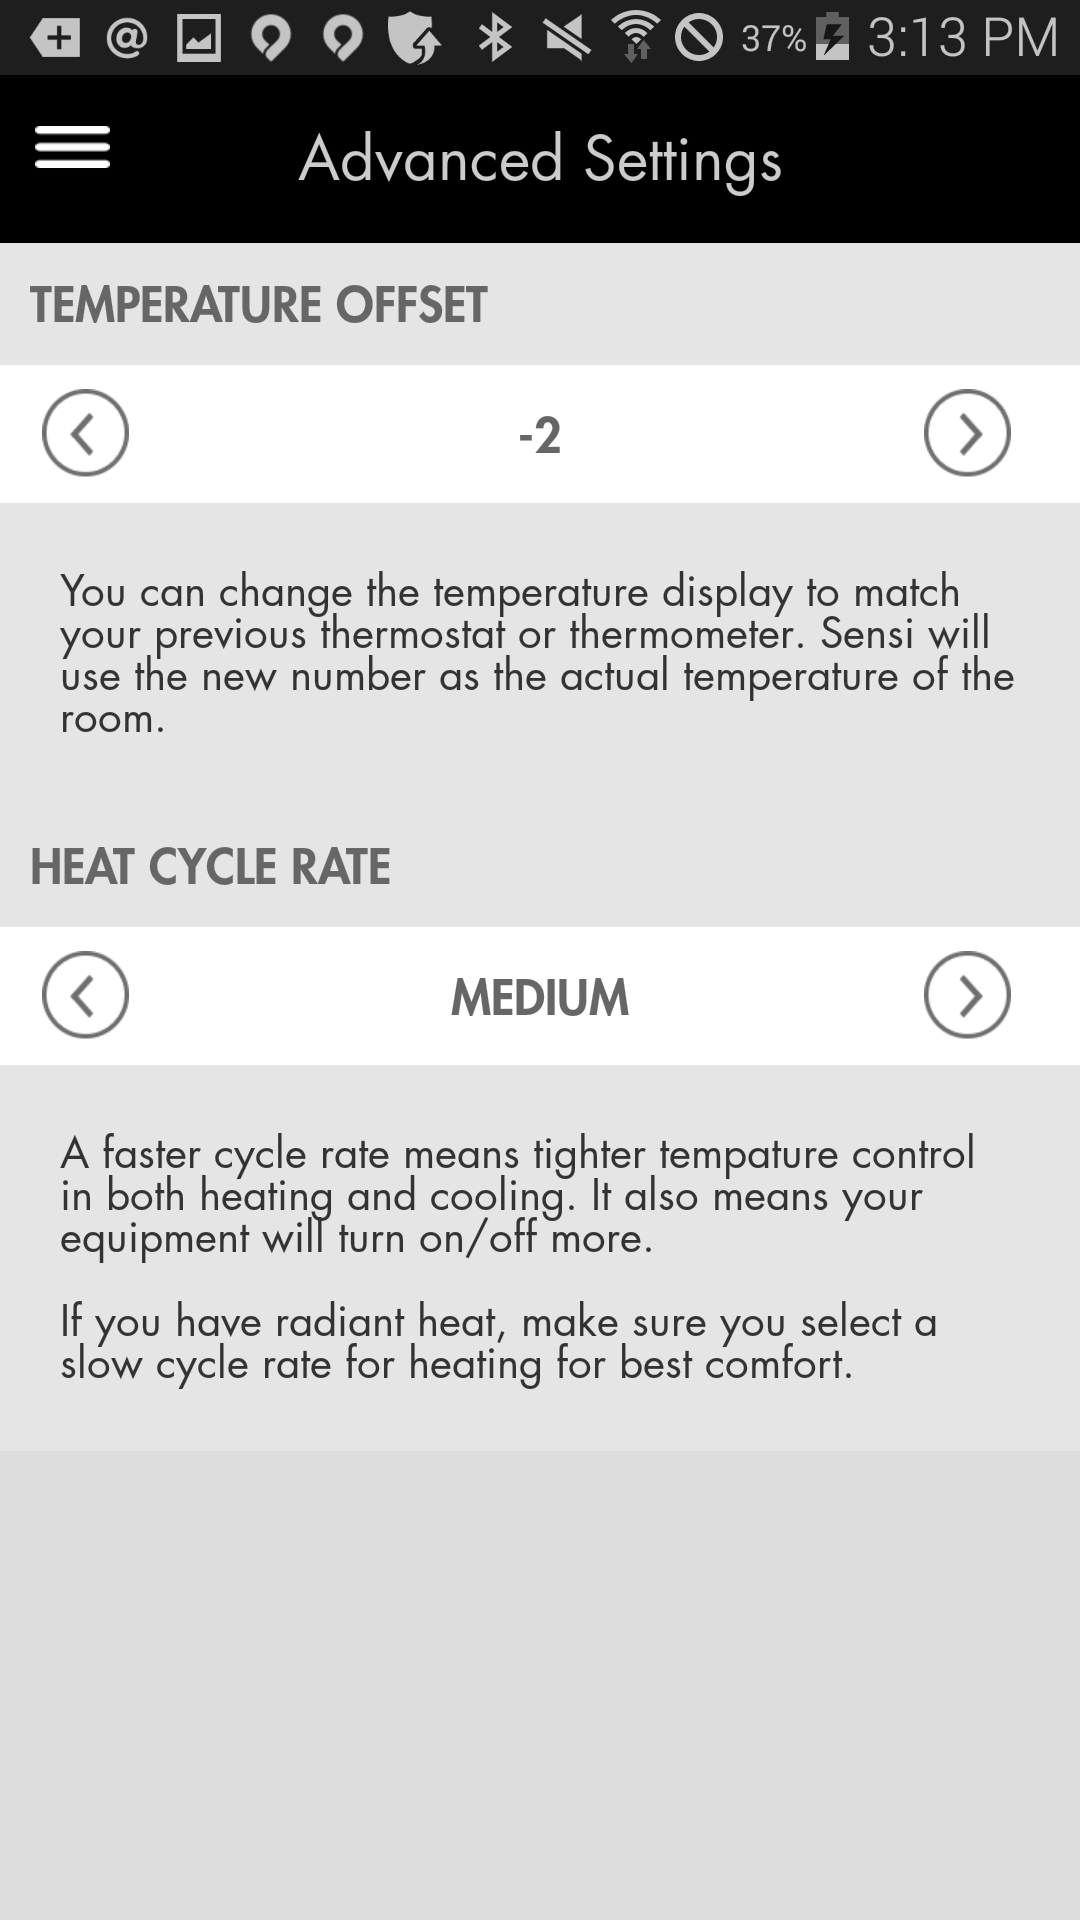 emerson sensi thermostat review digital trends emerson sensi themorstat review screenshot